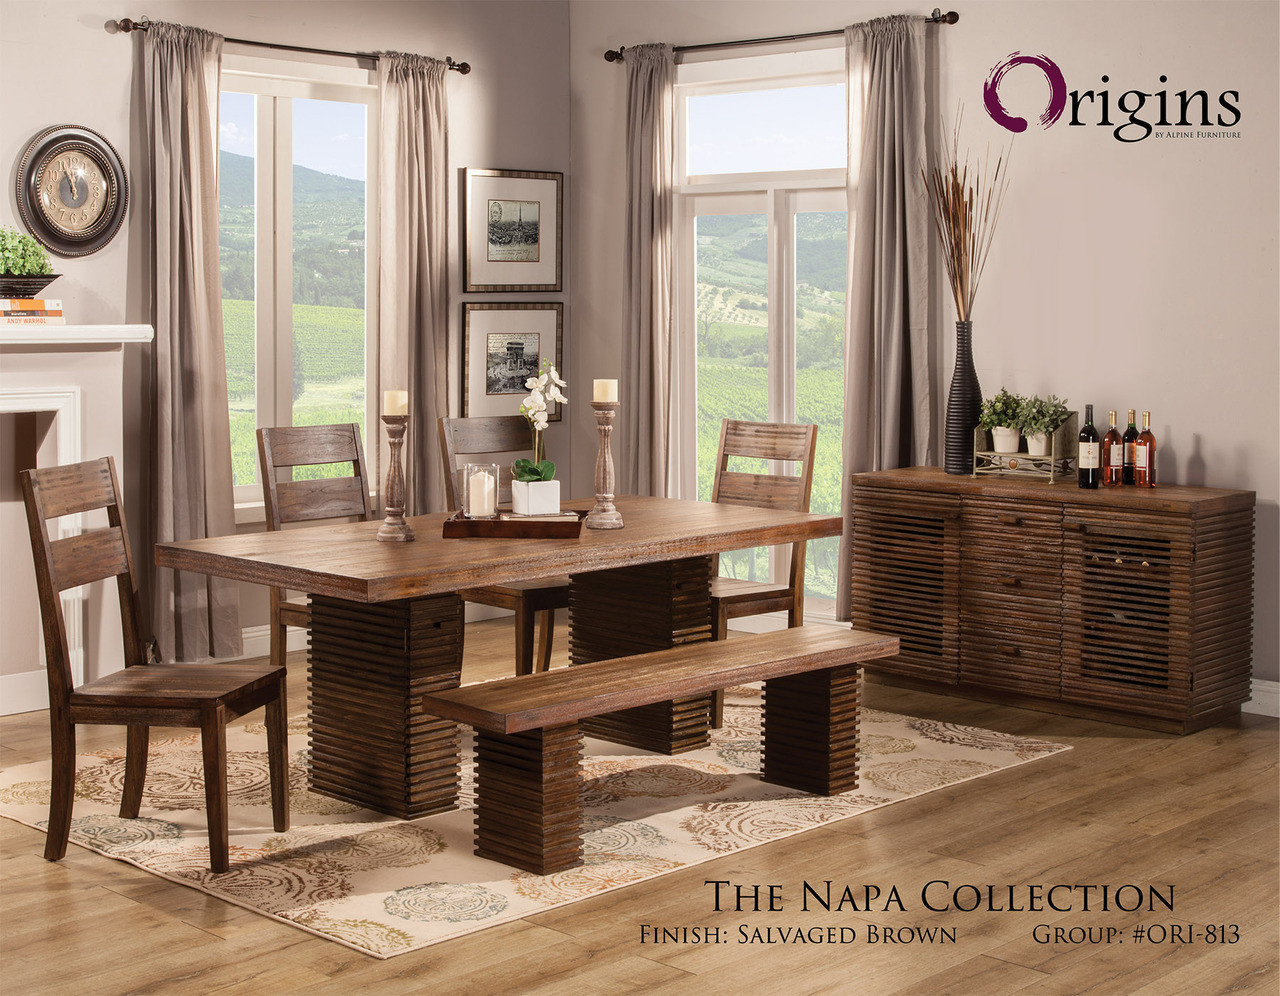 Superb Napa Salvaged Brown Dining Table Set From Origins By Alpine Furniture Caraccident5 Cool Chair Designs And Ideas Caraccident5Info